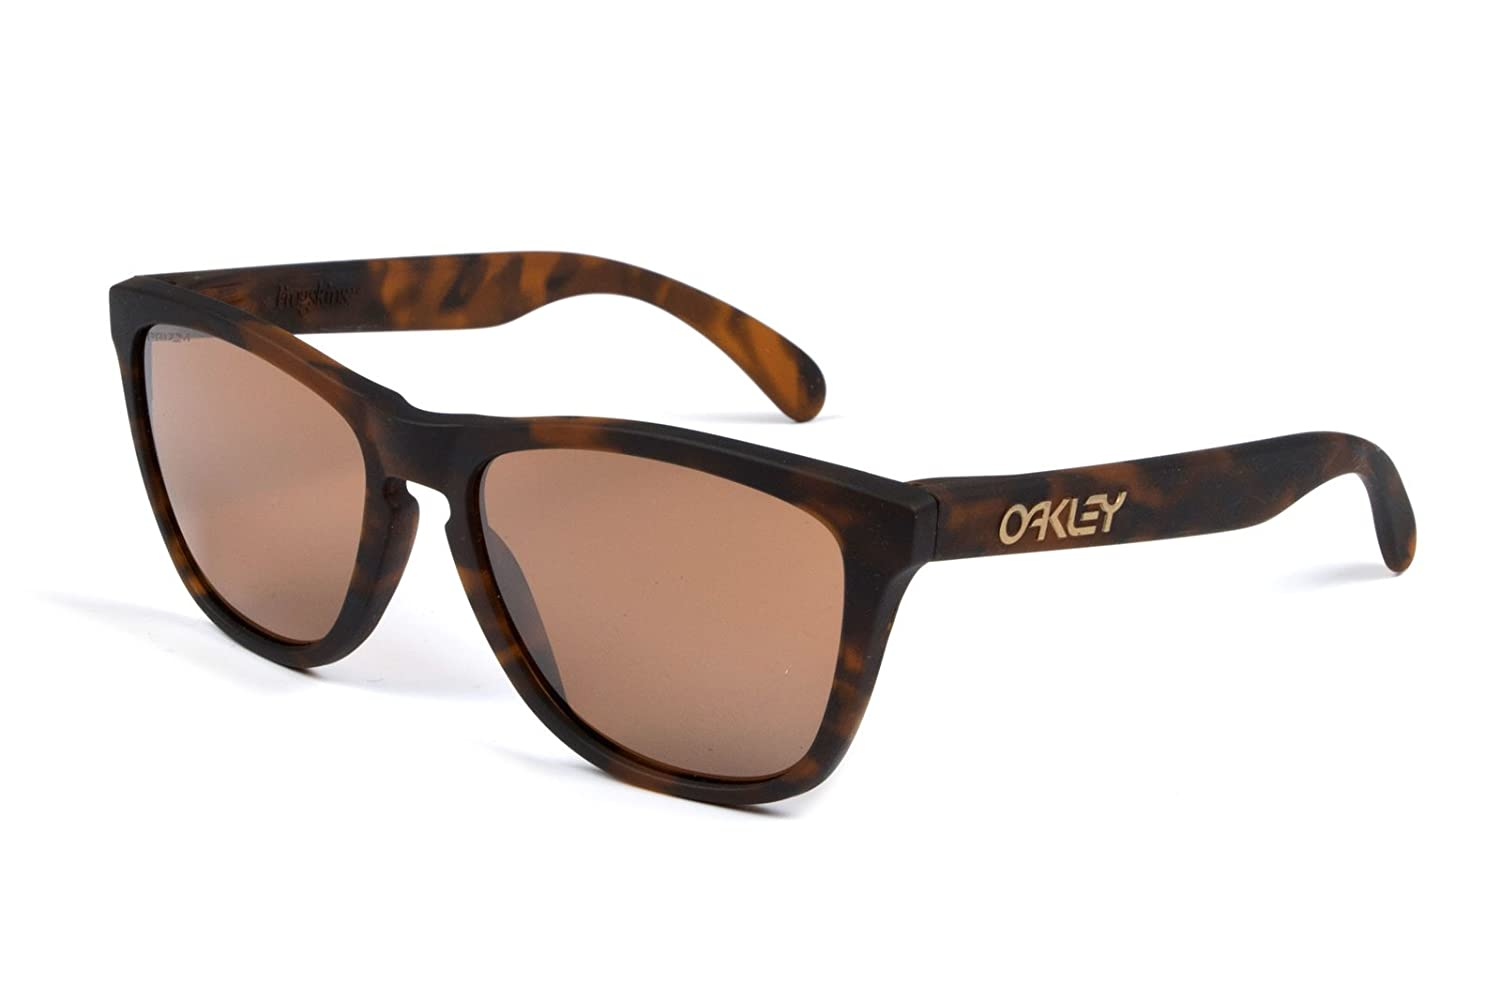 312eb7d35 Oakley Frogskins OO9013 C555 Sunglasses - Brown: Amazon.co.uk: Clothing